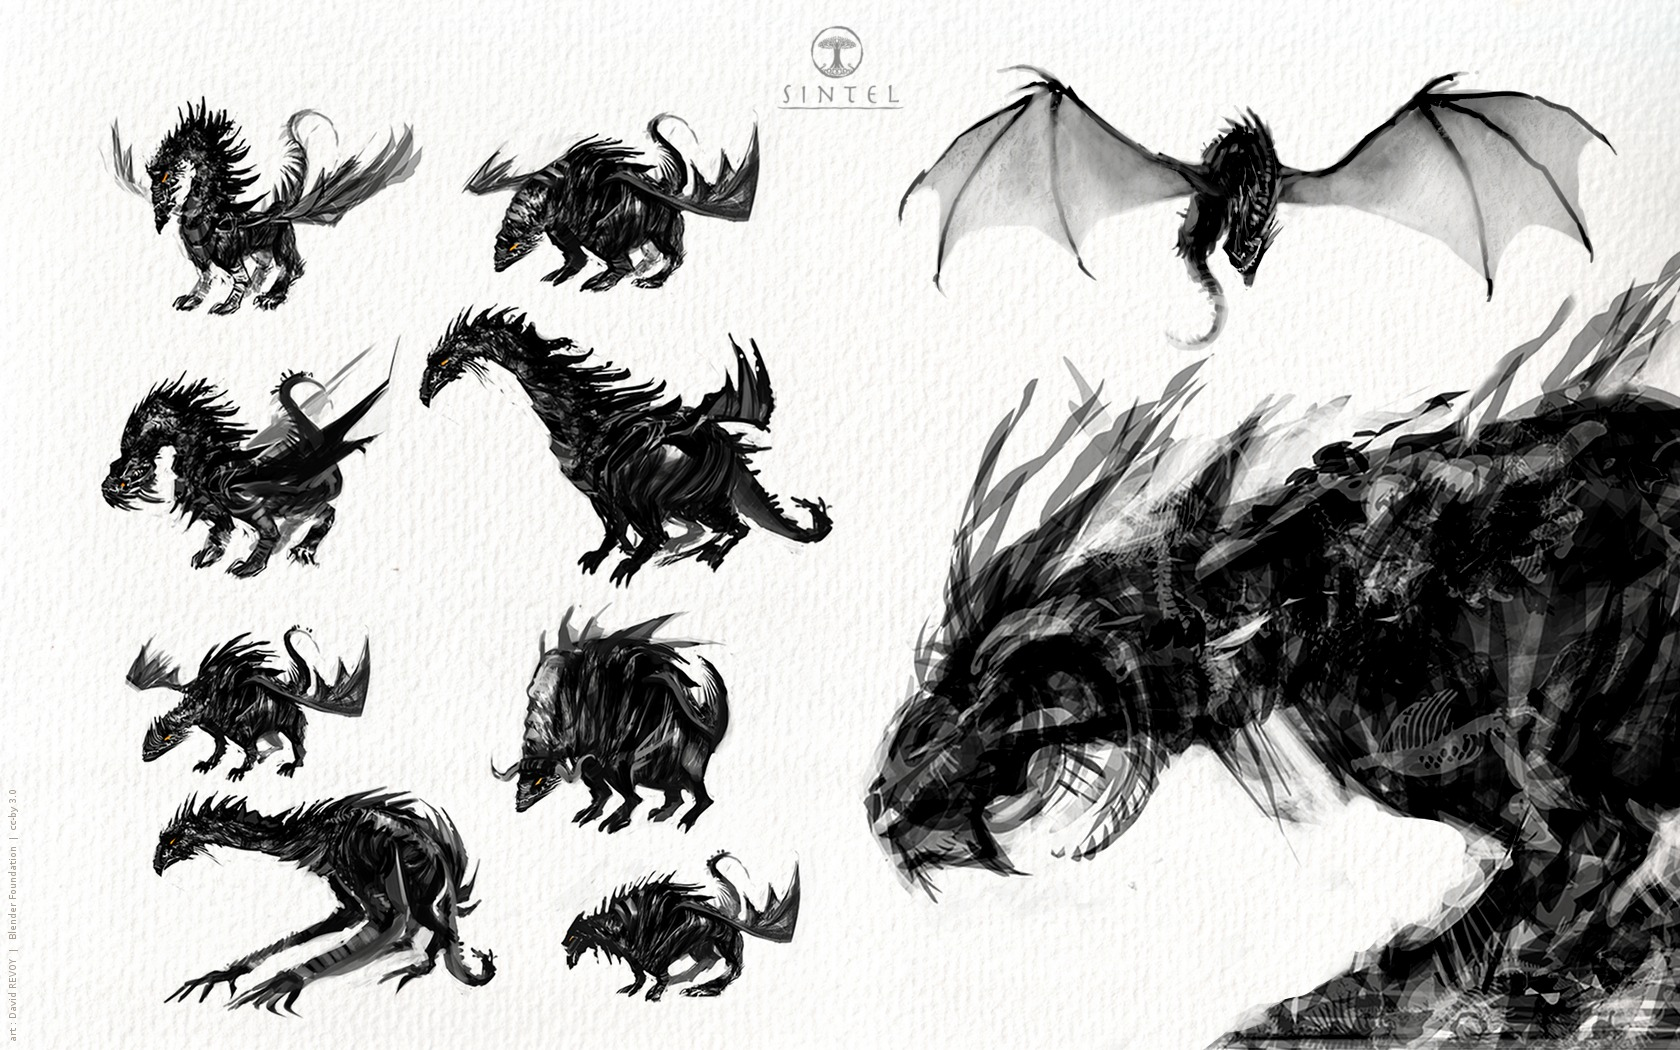 Sintel, the Durian Open Movie Project » Concept-art